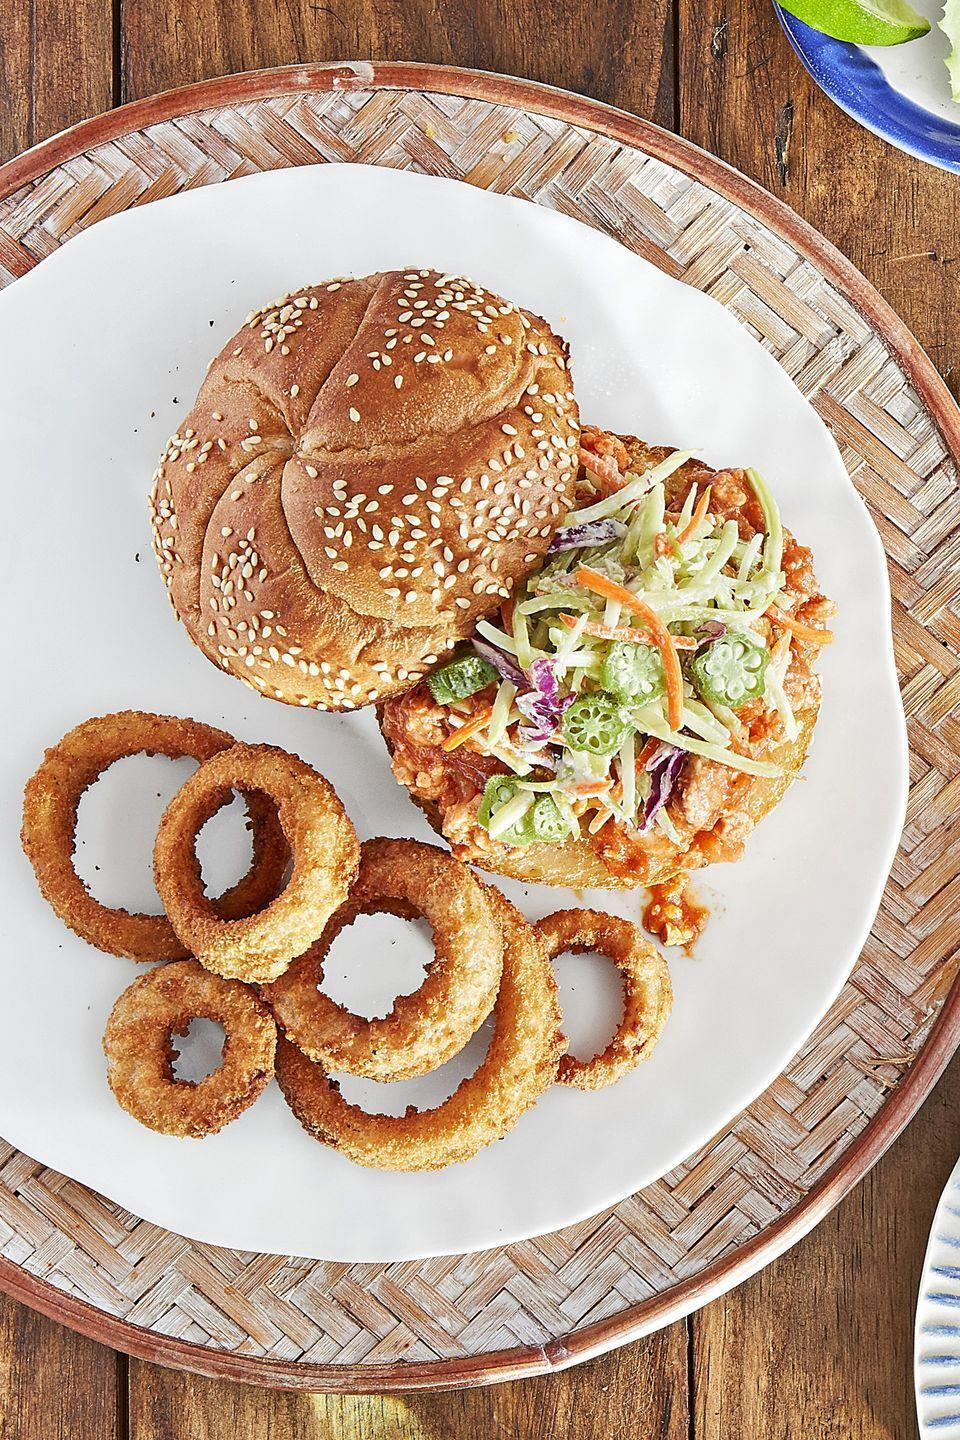 """<p>With onion rings and a homemade okra slaw, sloppy joes become a bit more refined.</p><p><strong><a href=""""https://www.countryliving.com/food-drinks/recipes/a44280/sloppy-joes-pickled-okra-slaw-recipe/"""" rel=""""nofollow noopener"""" target=""""_blank"""" data-ylk=""""slk:Get the recipe"""" class=""""link rapid-noclick-resp"""">Get the recipe</a>.</strong></p>"""